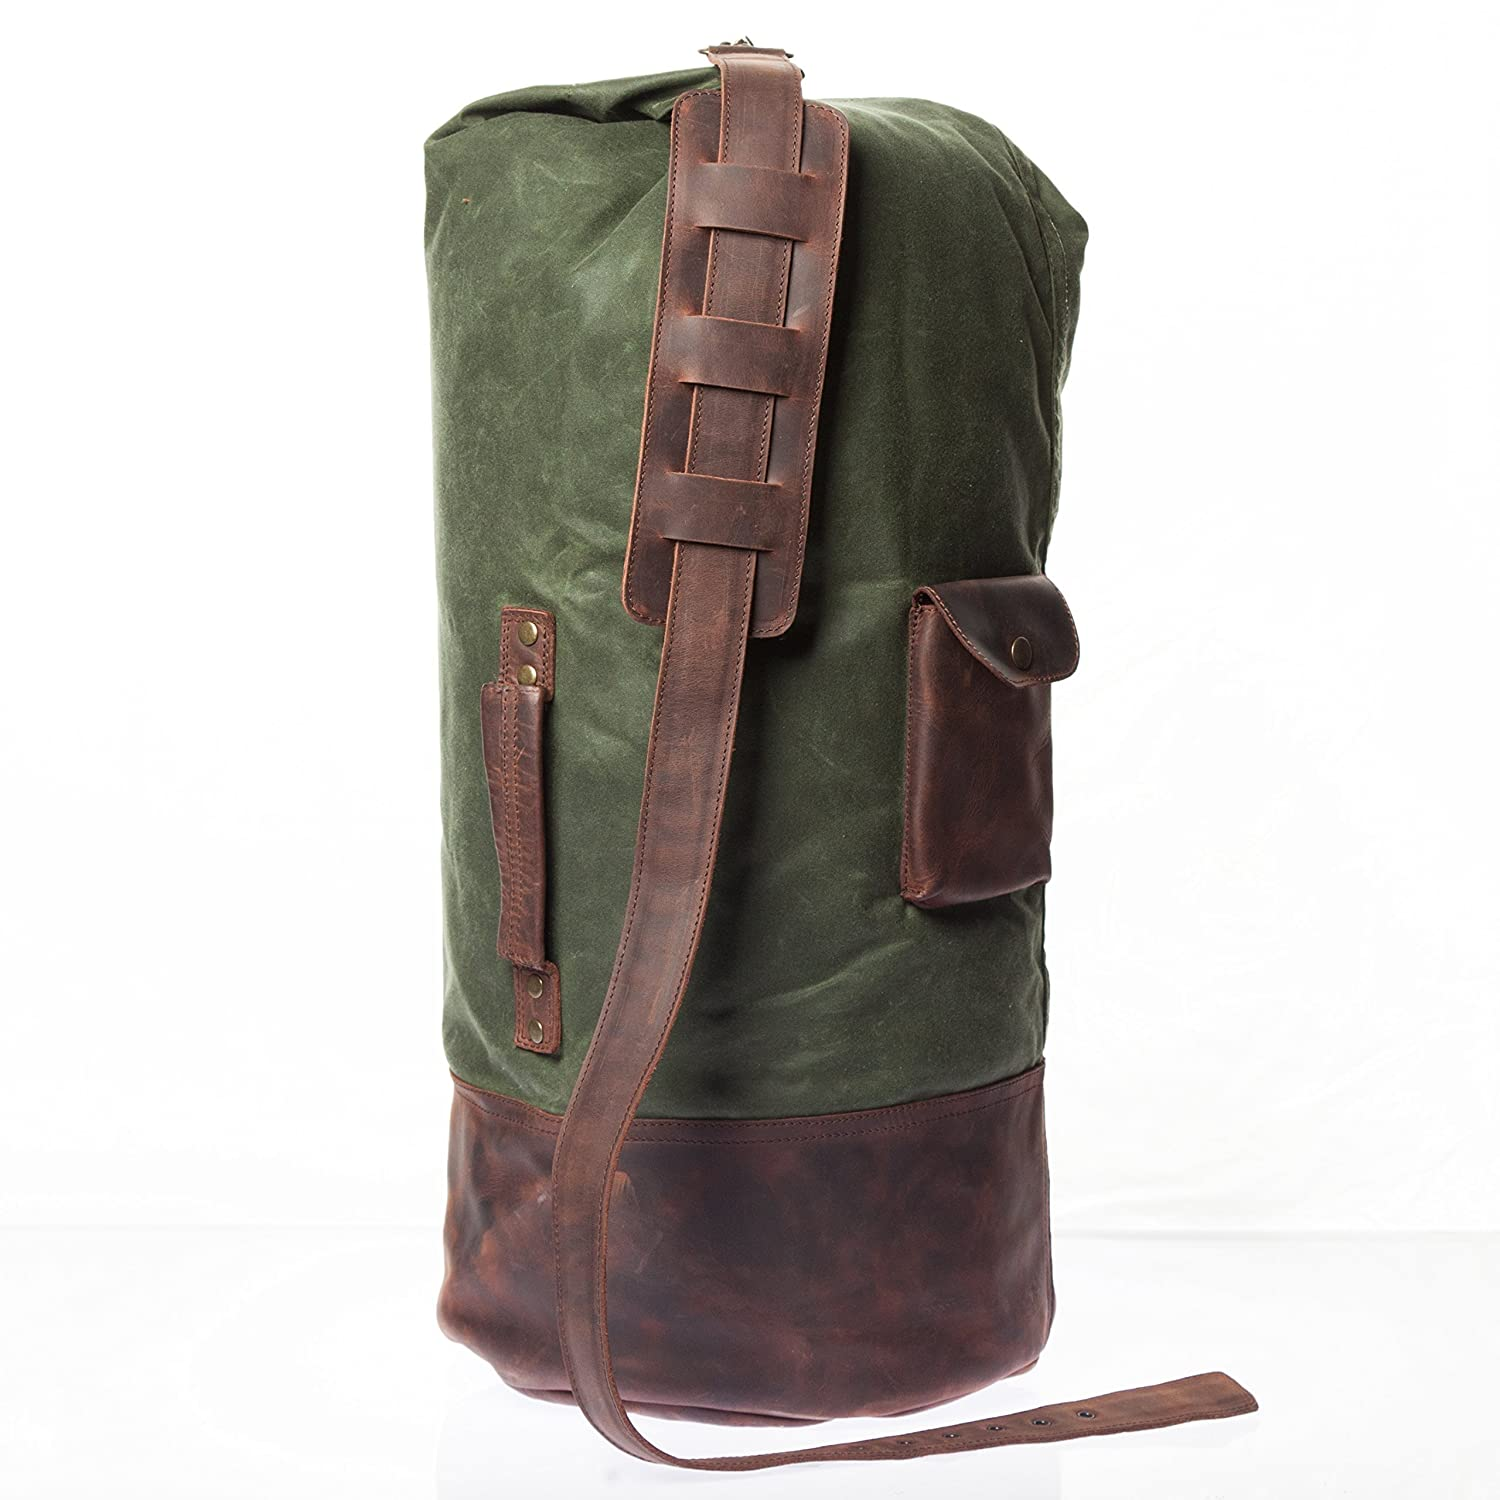 1a5e36b5d370 Amazon.com: Vintage Handmade Waxed Canvas Duffle Bag - Made From Alcanena  Leather & UK Waxed Cotton - High Quality Retro Overnight Bag With  Waterproof ...